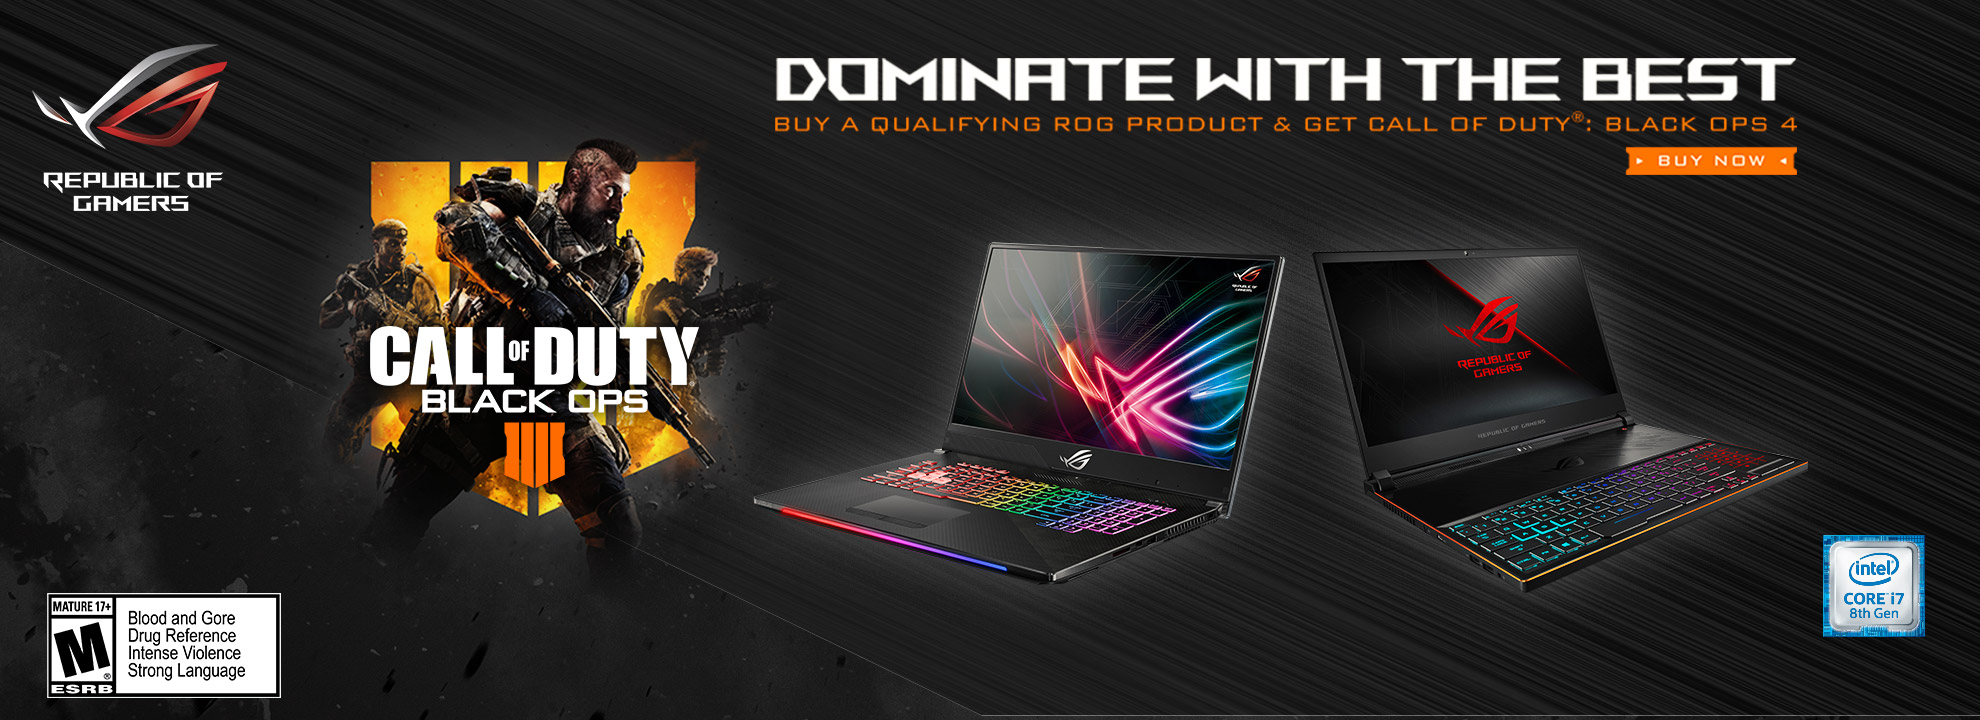 Buy a qualifying ROG product & get Free Call Of Duty: Black Ops 4